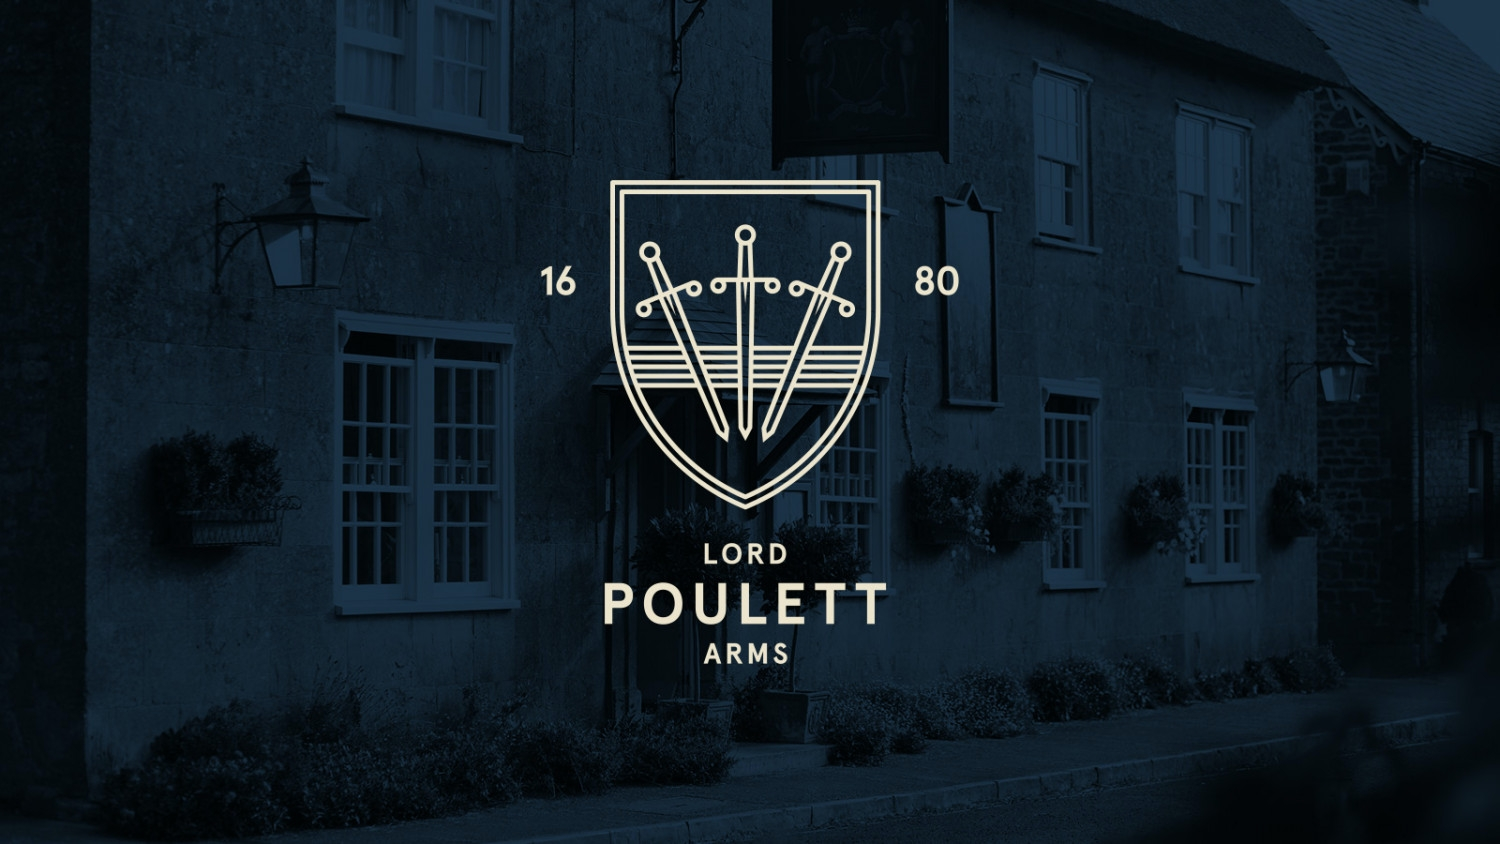 The Lord Poulett Arms